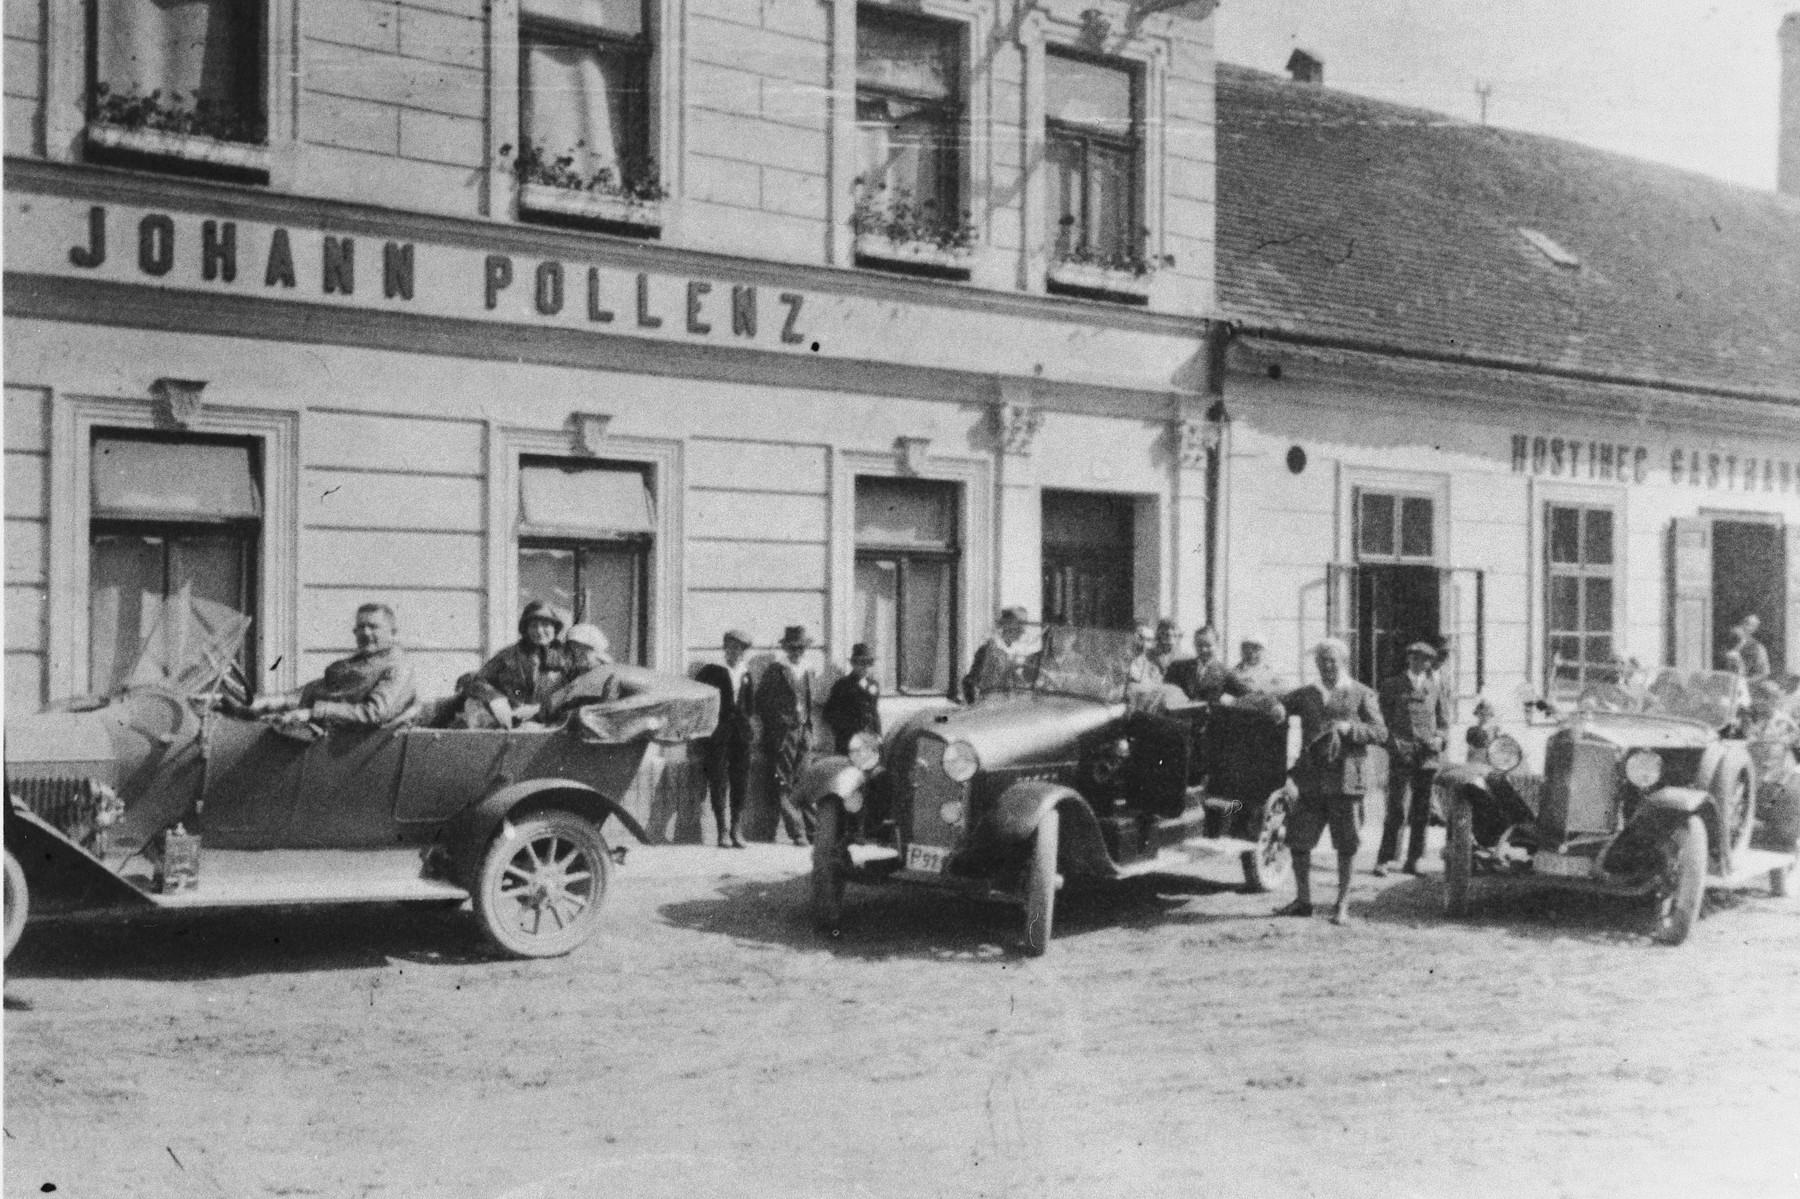 People gather outside the store of Johann Pollenz.